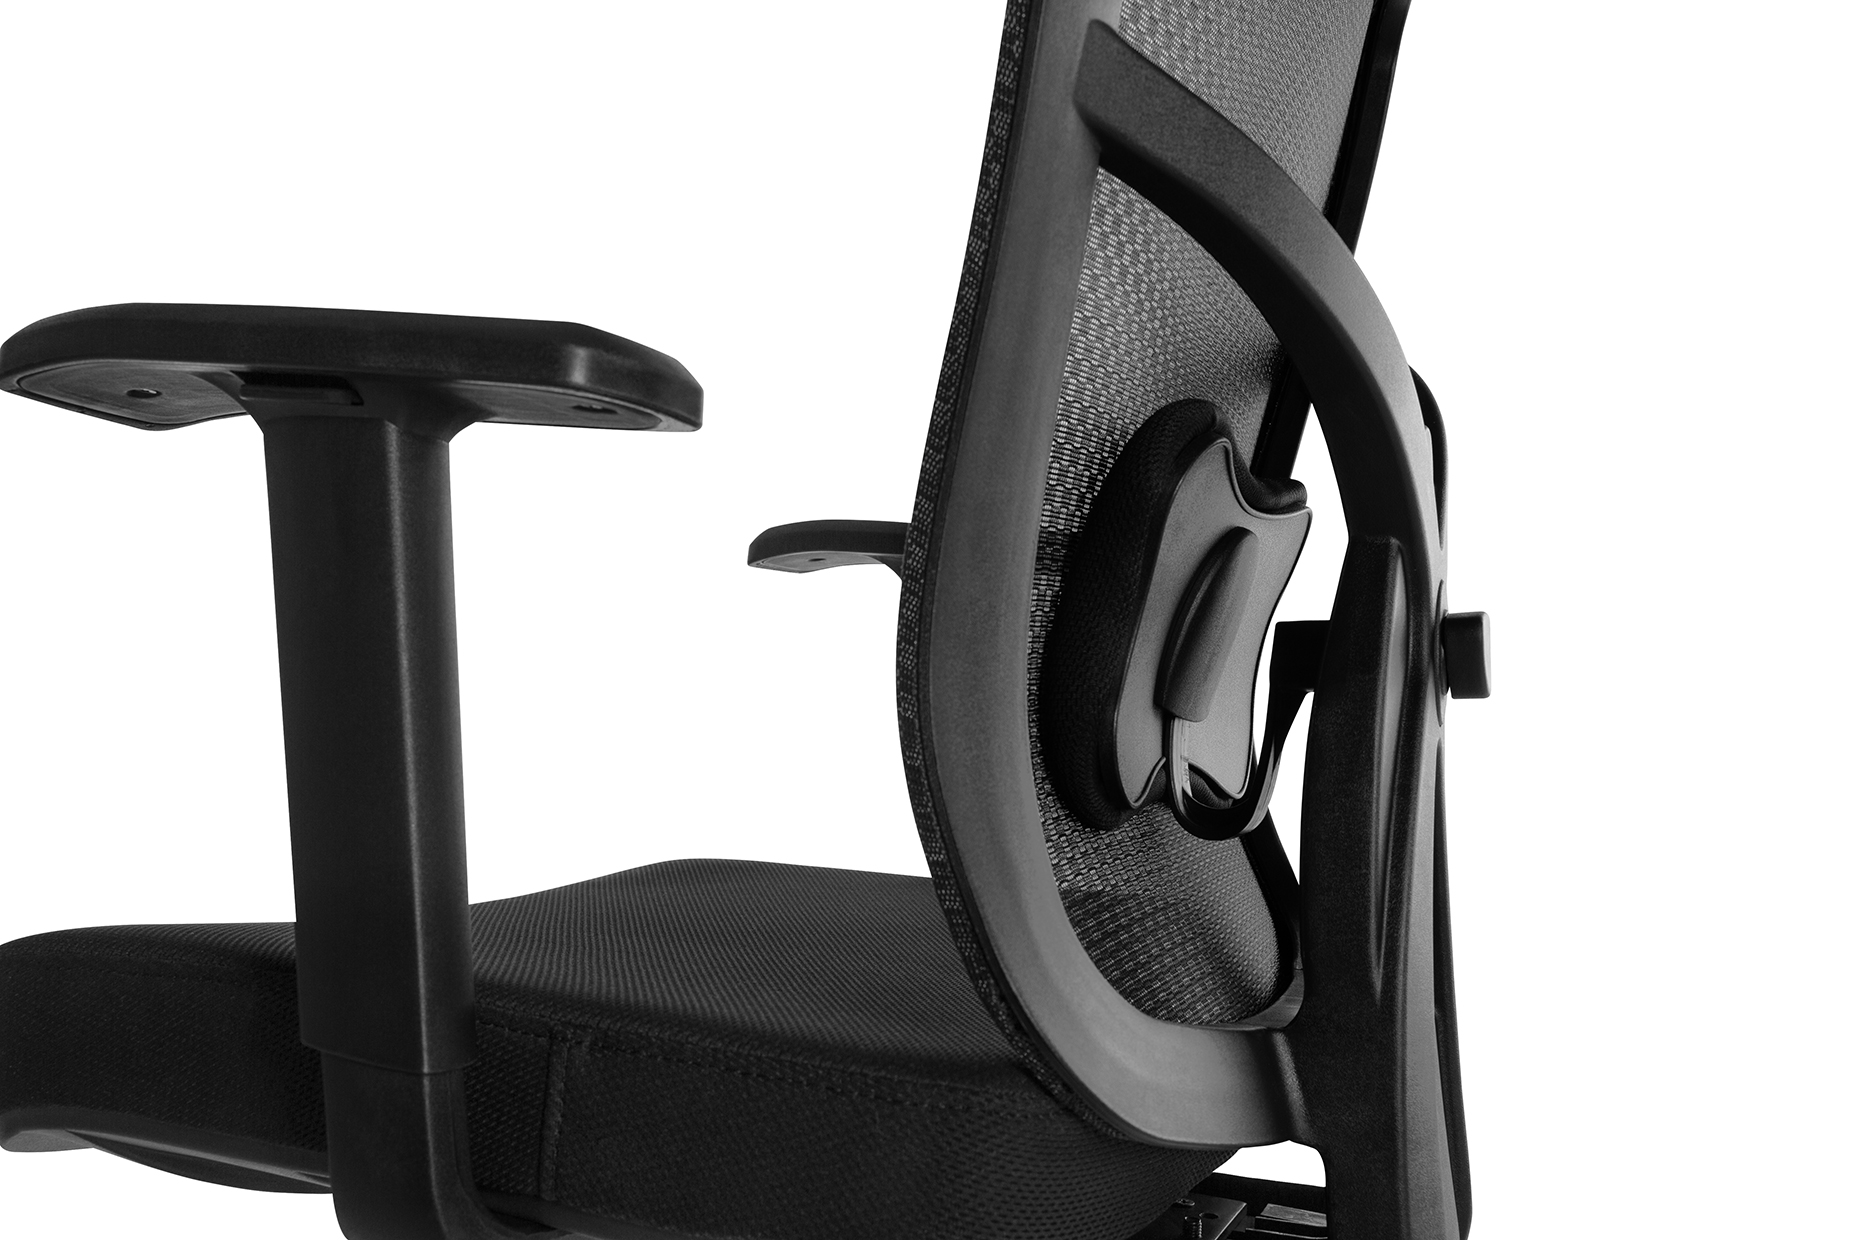 OFFICEOASIS_OFFICECHAIR_WHITEBG_FULL_I